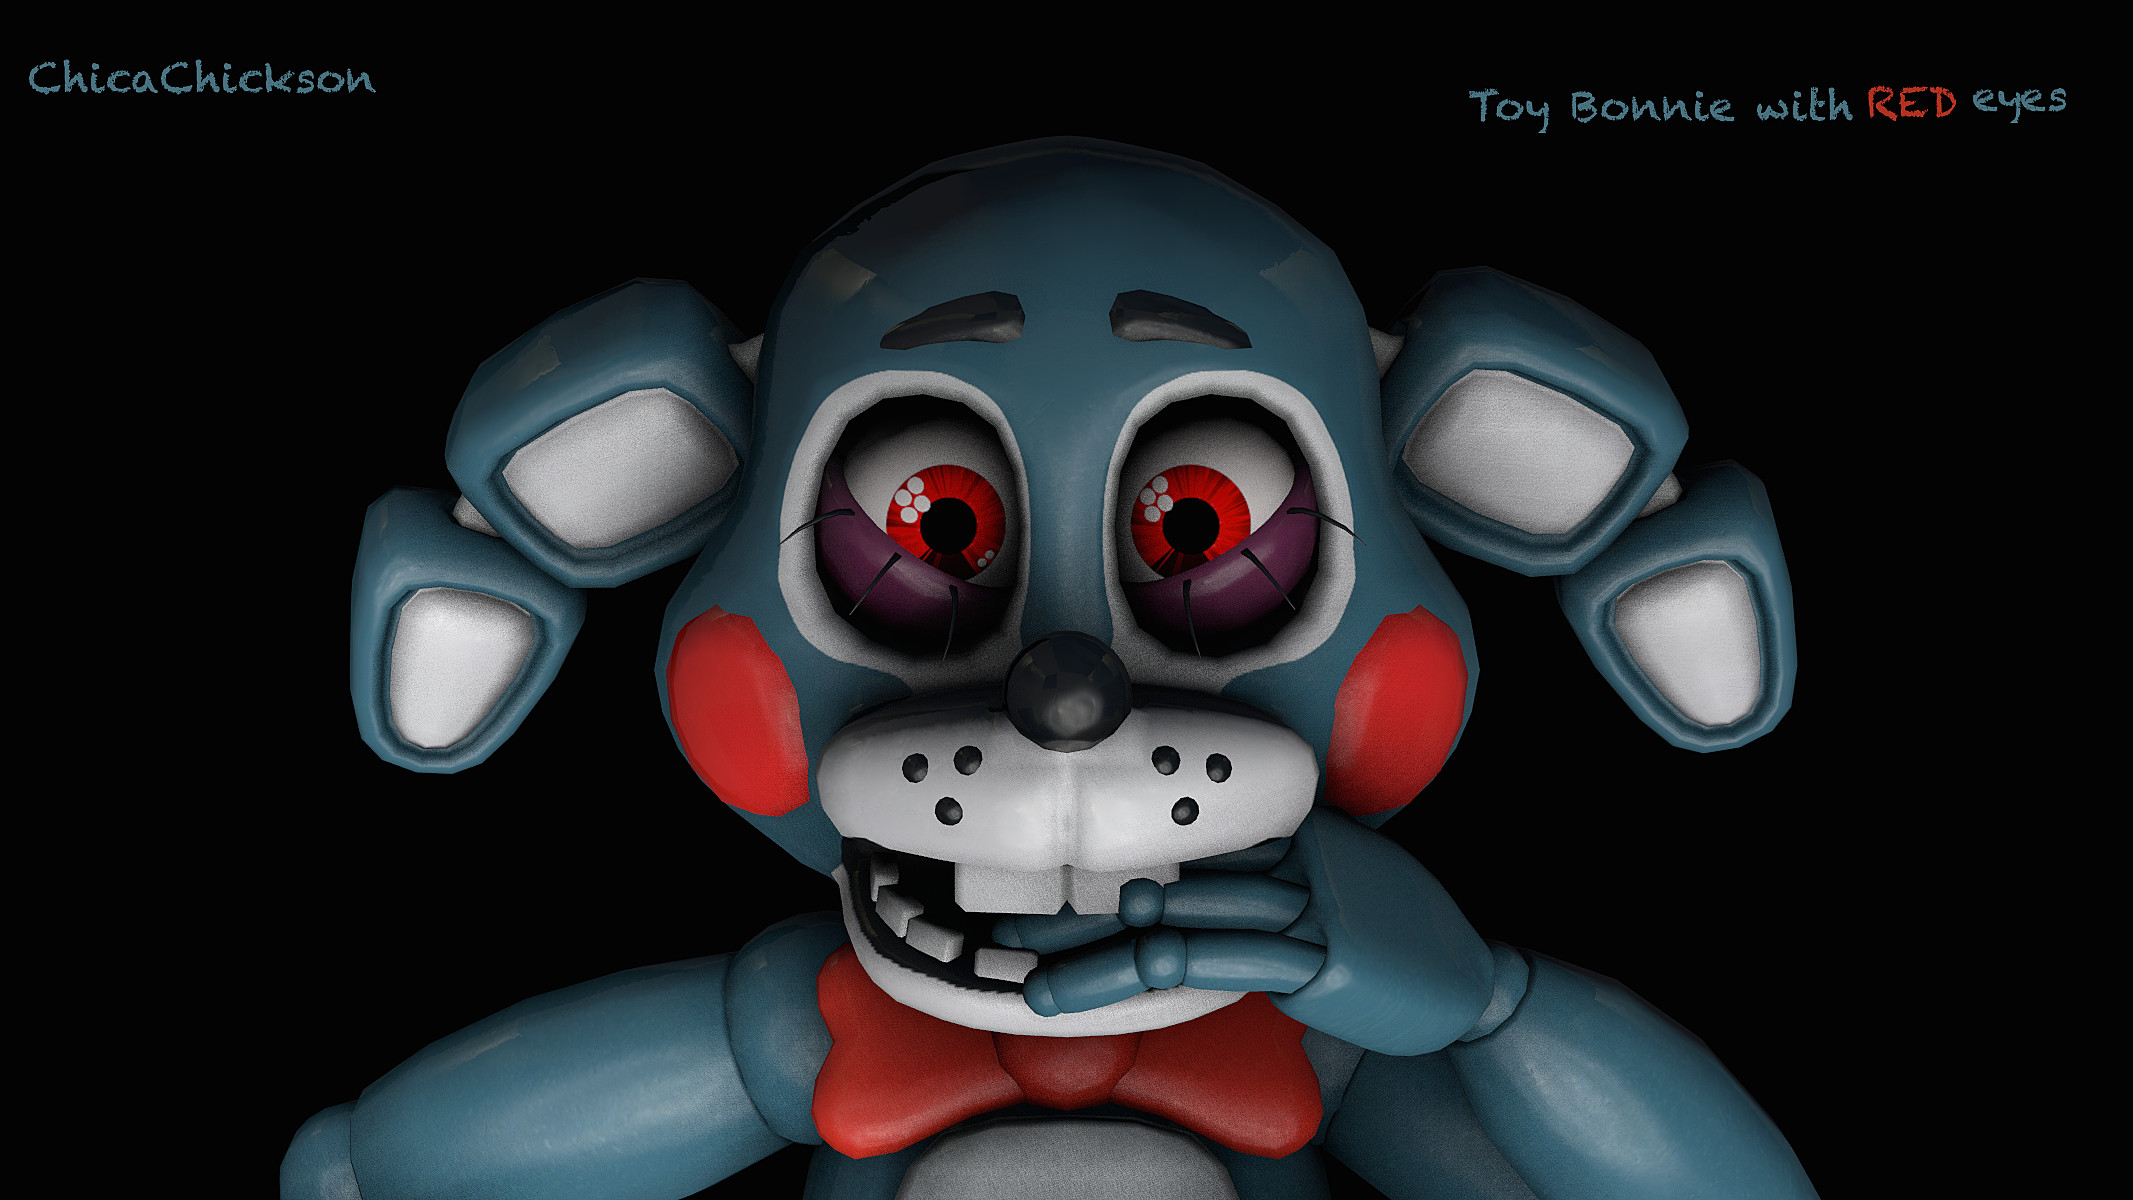 2133x1200 ... FNAF] Toy Bonnie with Red eyes by ChicaChickson